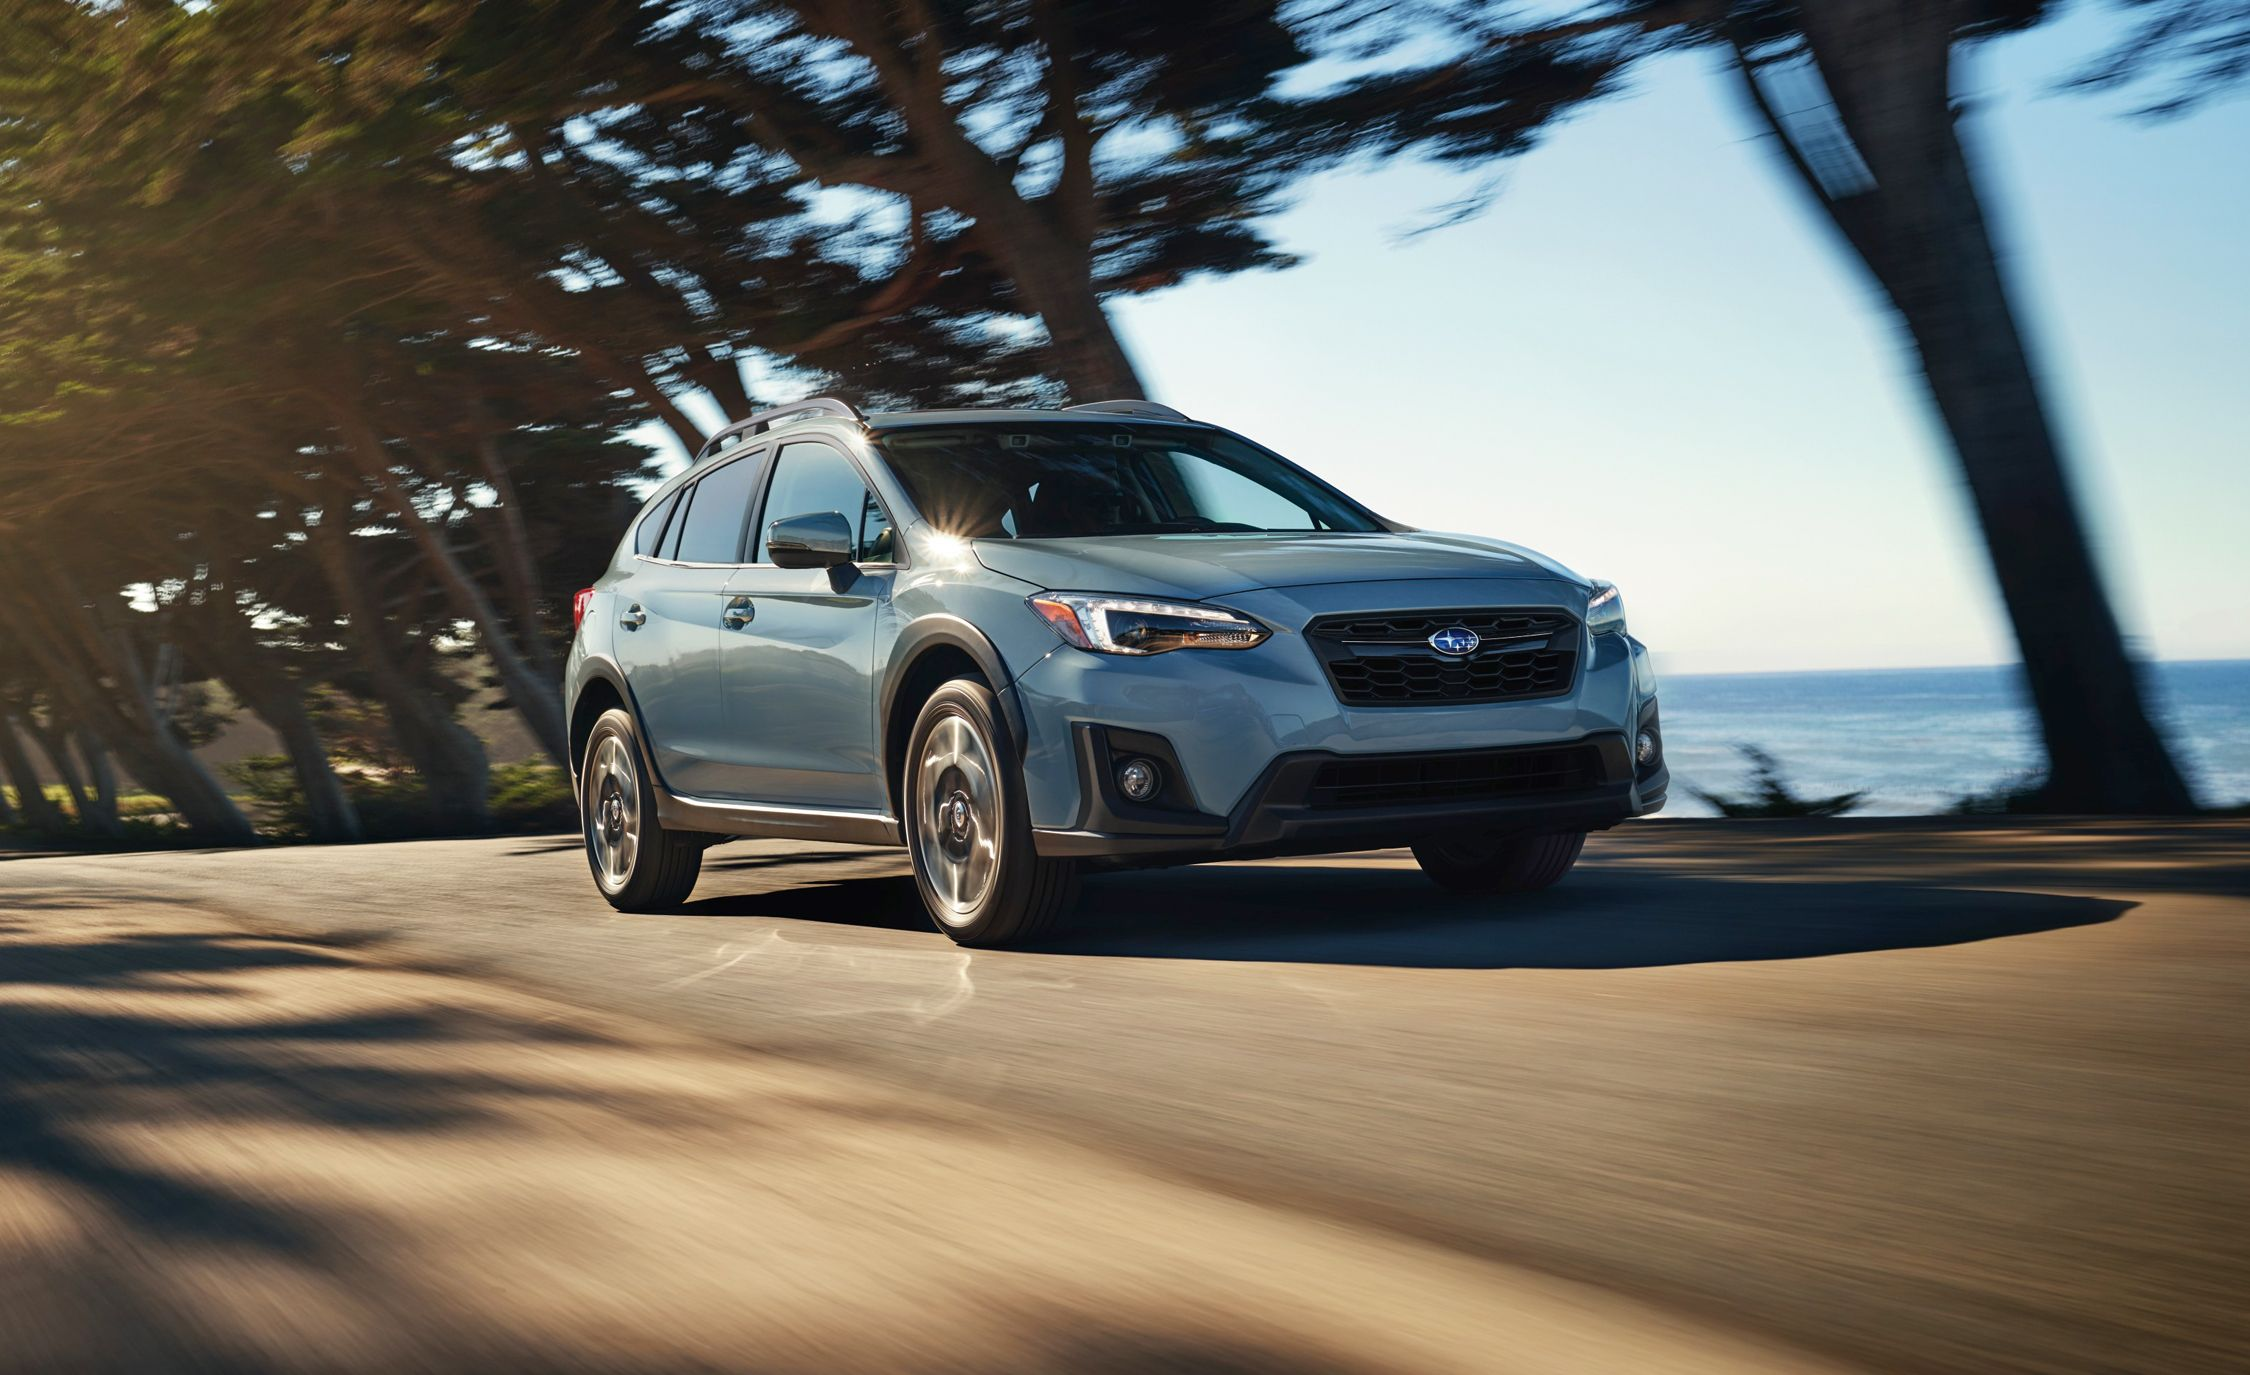 2018 Subaru Crosstrek: Redesigned for the Faithful